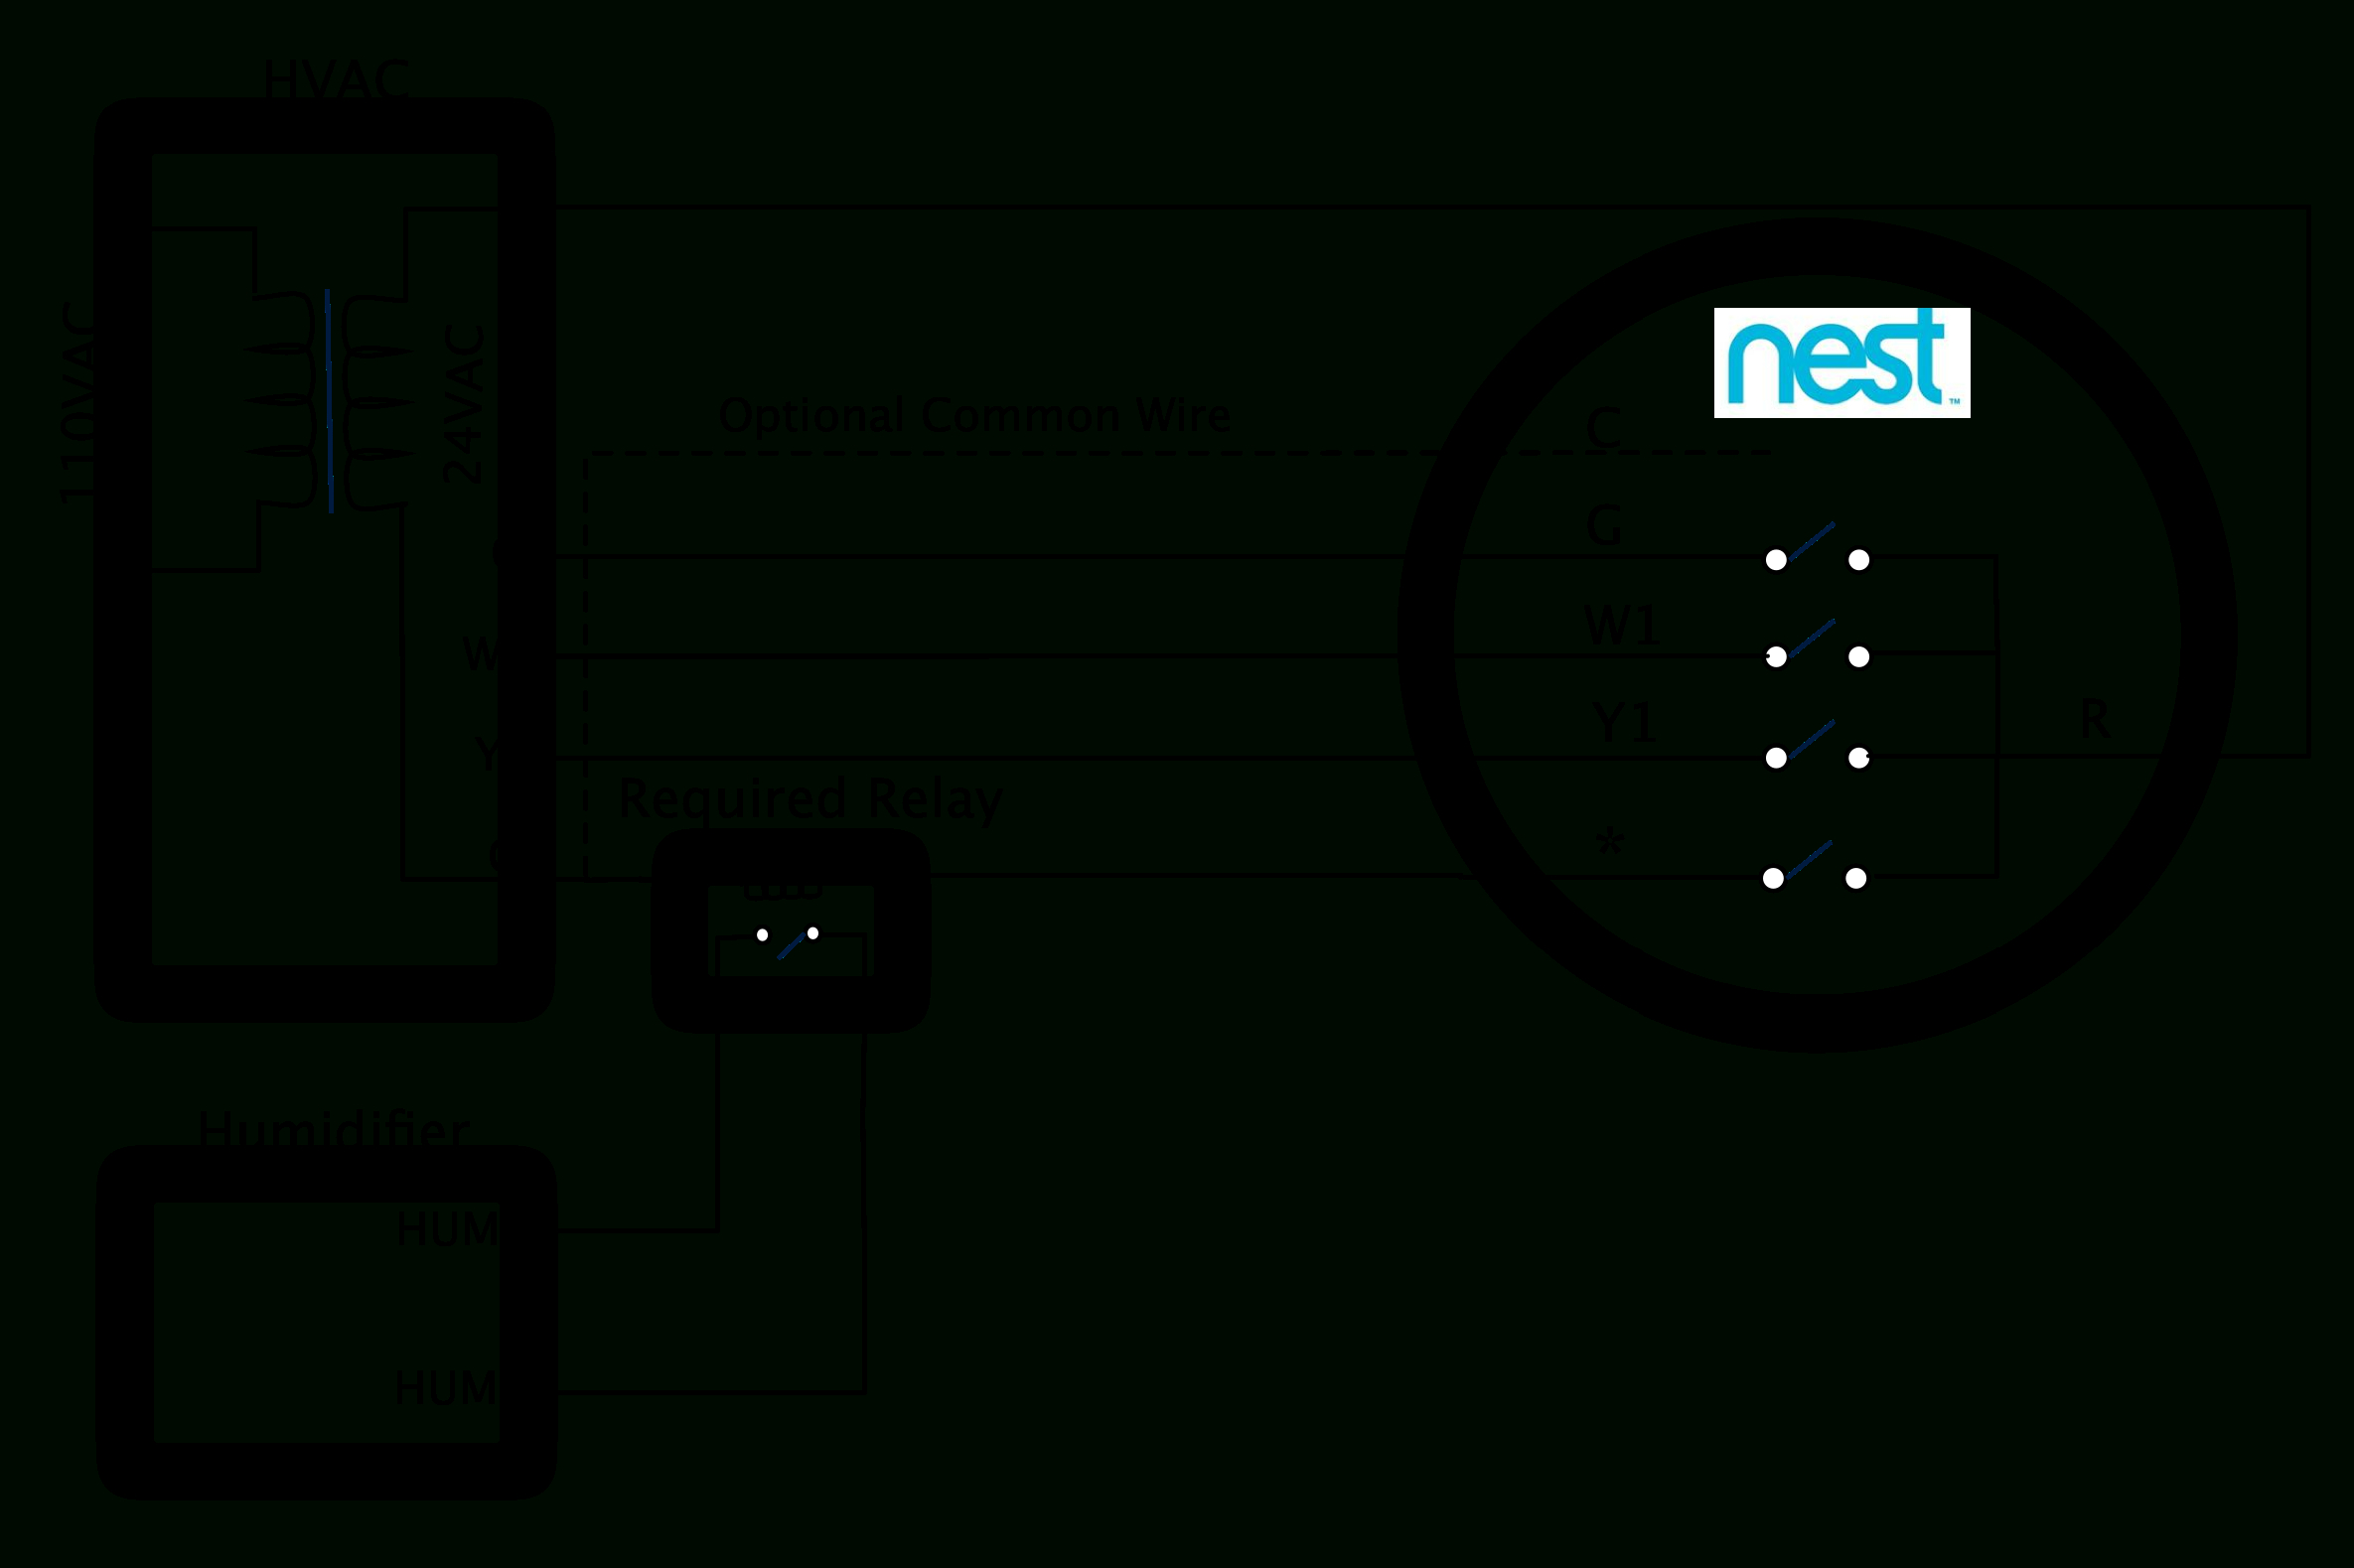 Nest Learning Thermostat Advanced Installation And Setup Help For - 4 Wire Nest Thermostat Wiring Diagram